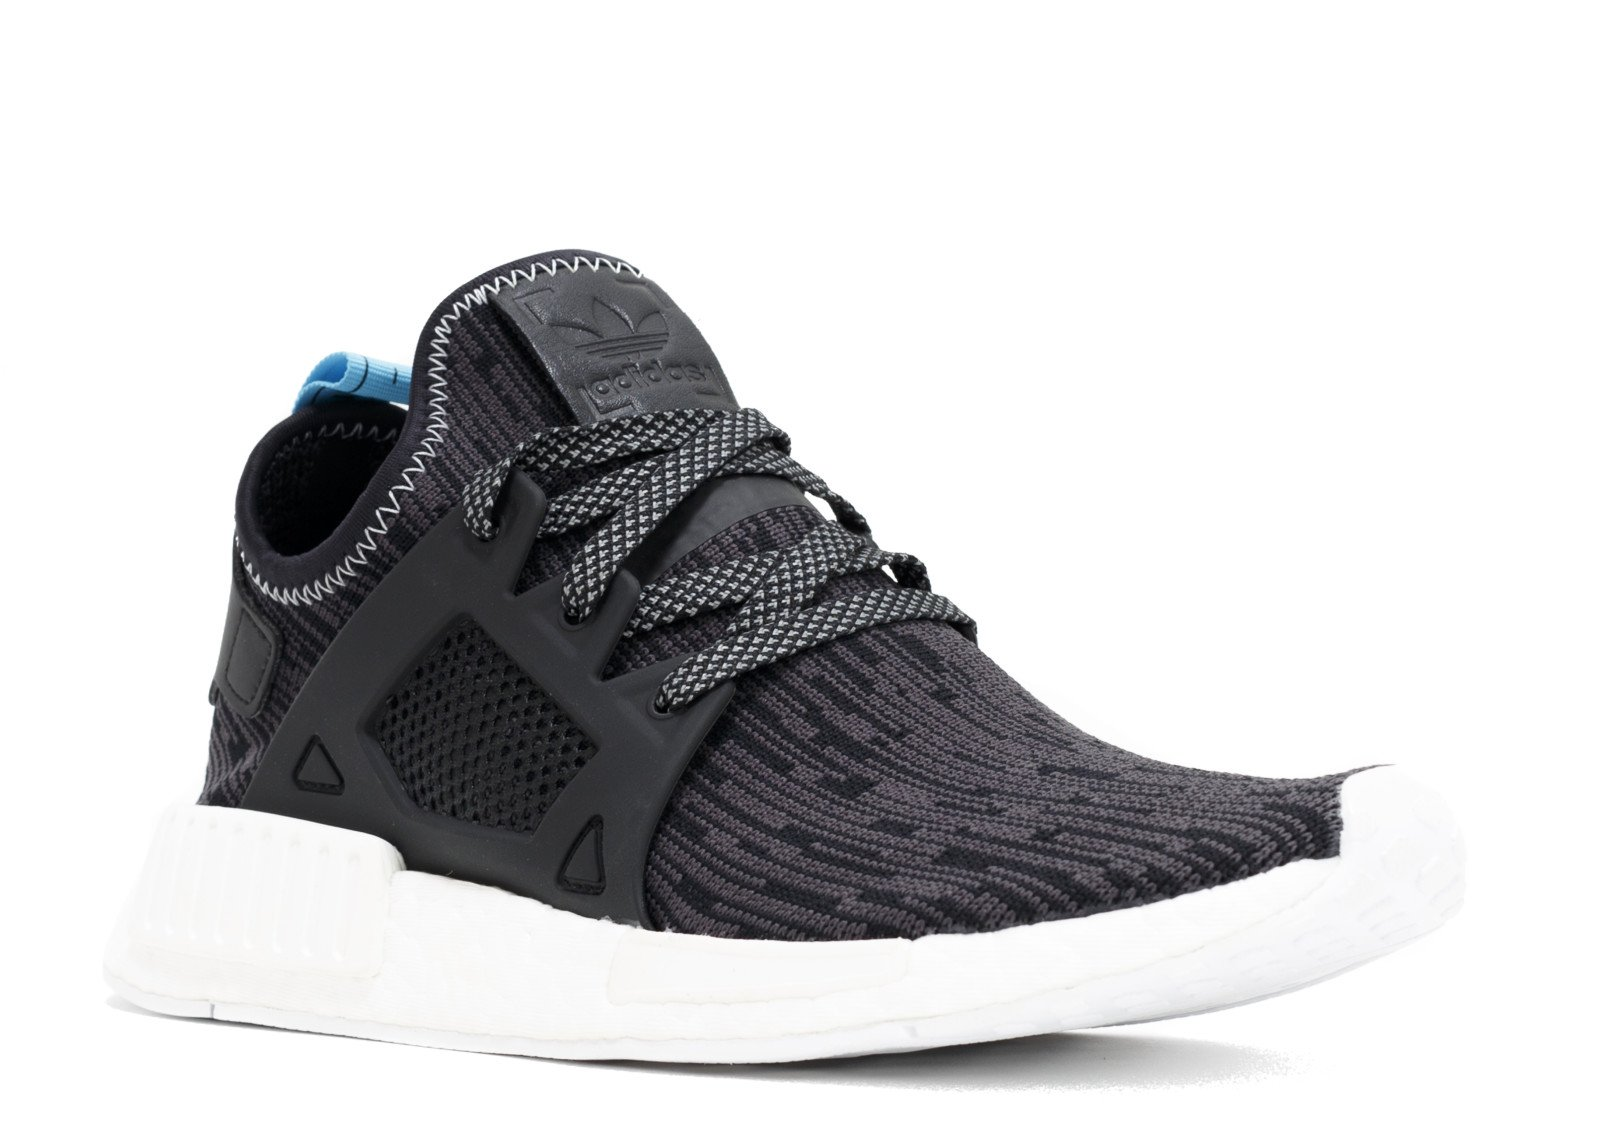 Galleon - Adidas NMD Xr1 Pk - S32215 - Size 4.5 Black 8be5387c3